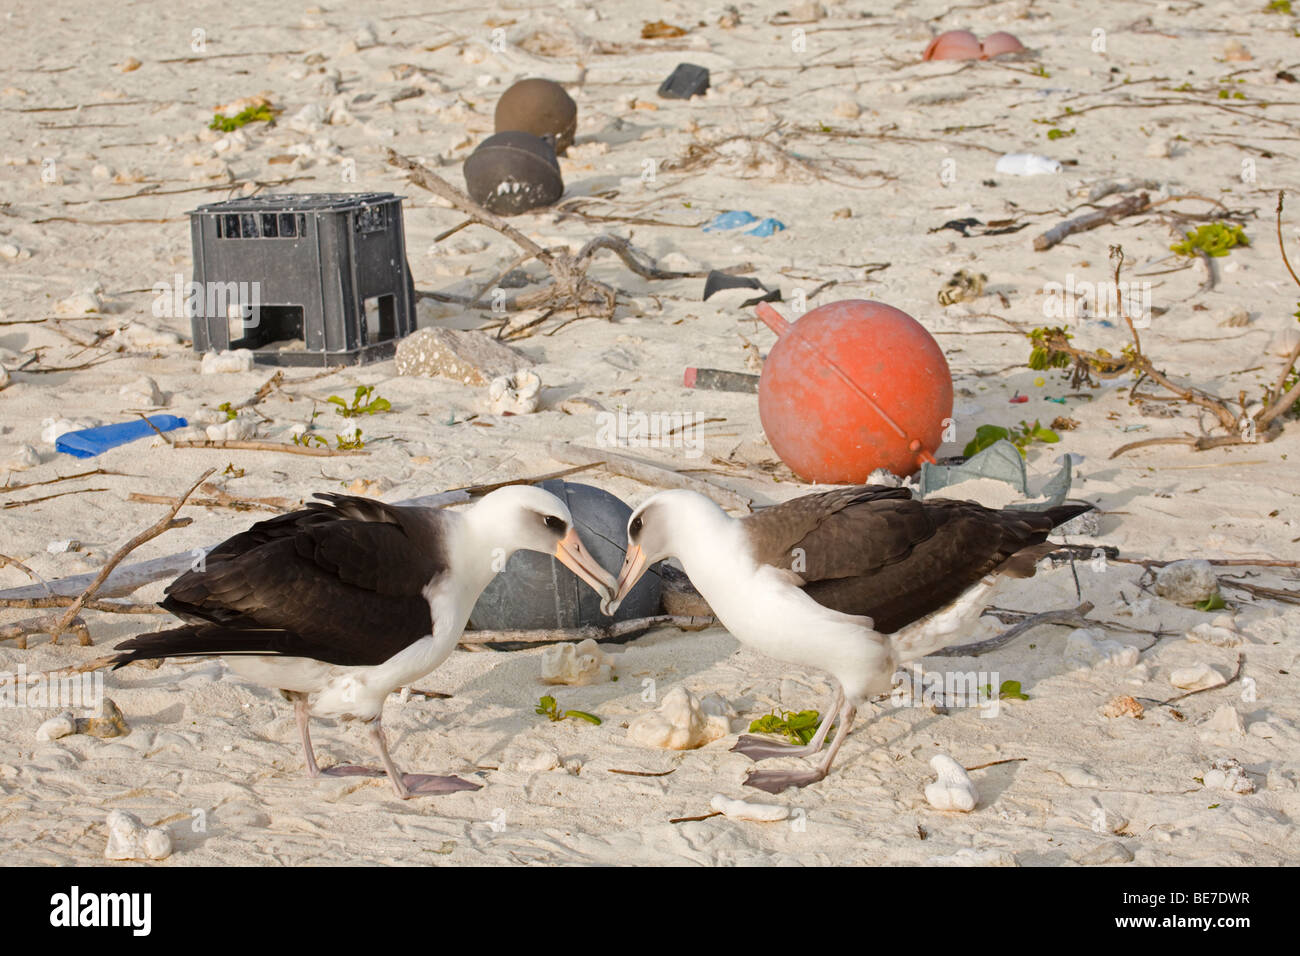 Laysan Albatross pair courting with marine debris on beach in background, Midway Atoll - Stock Image